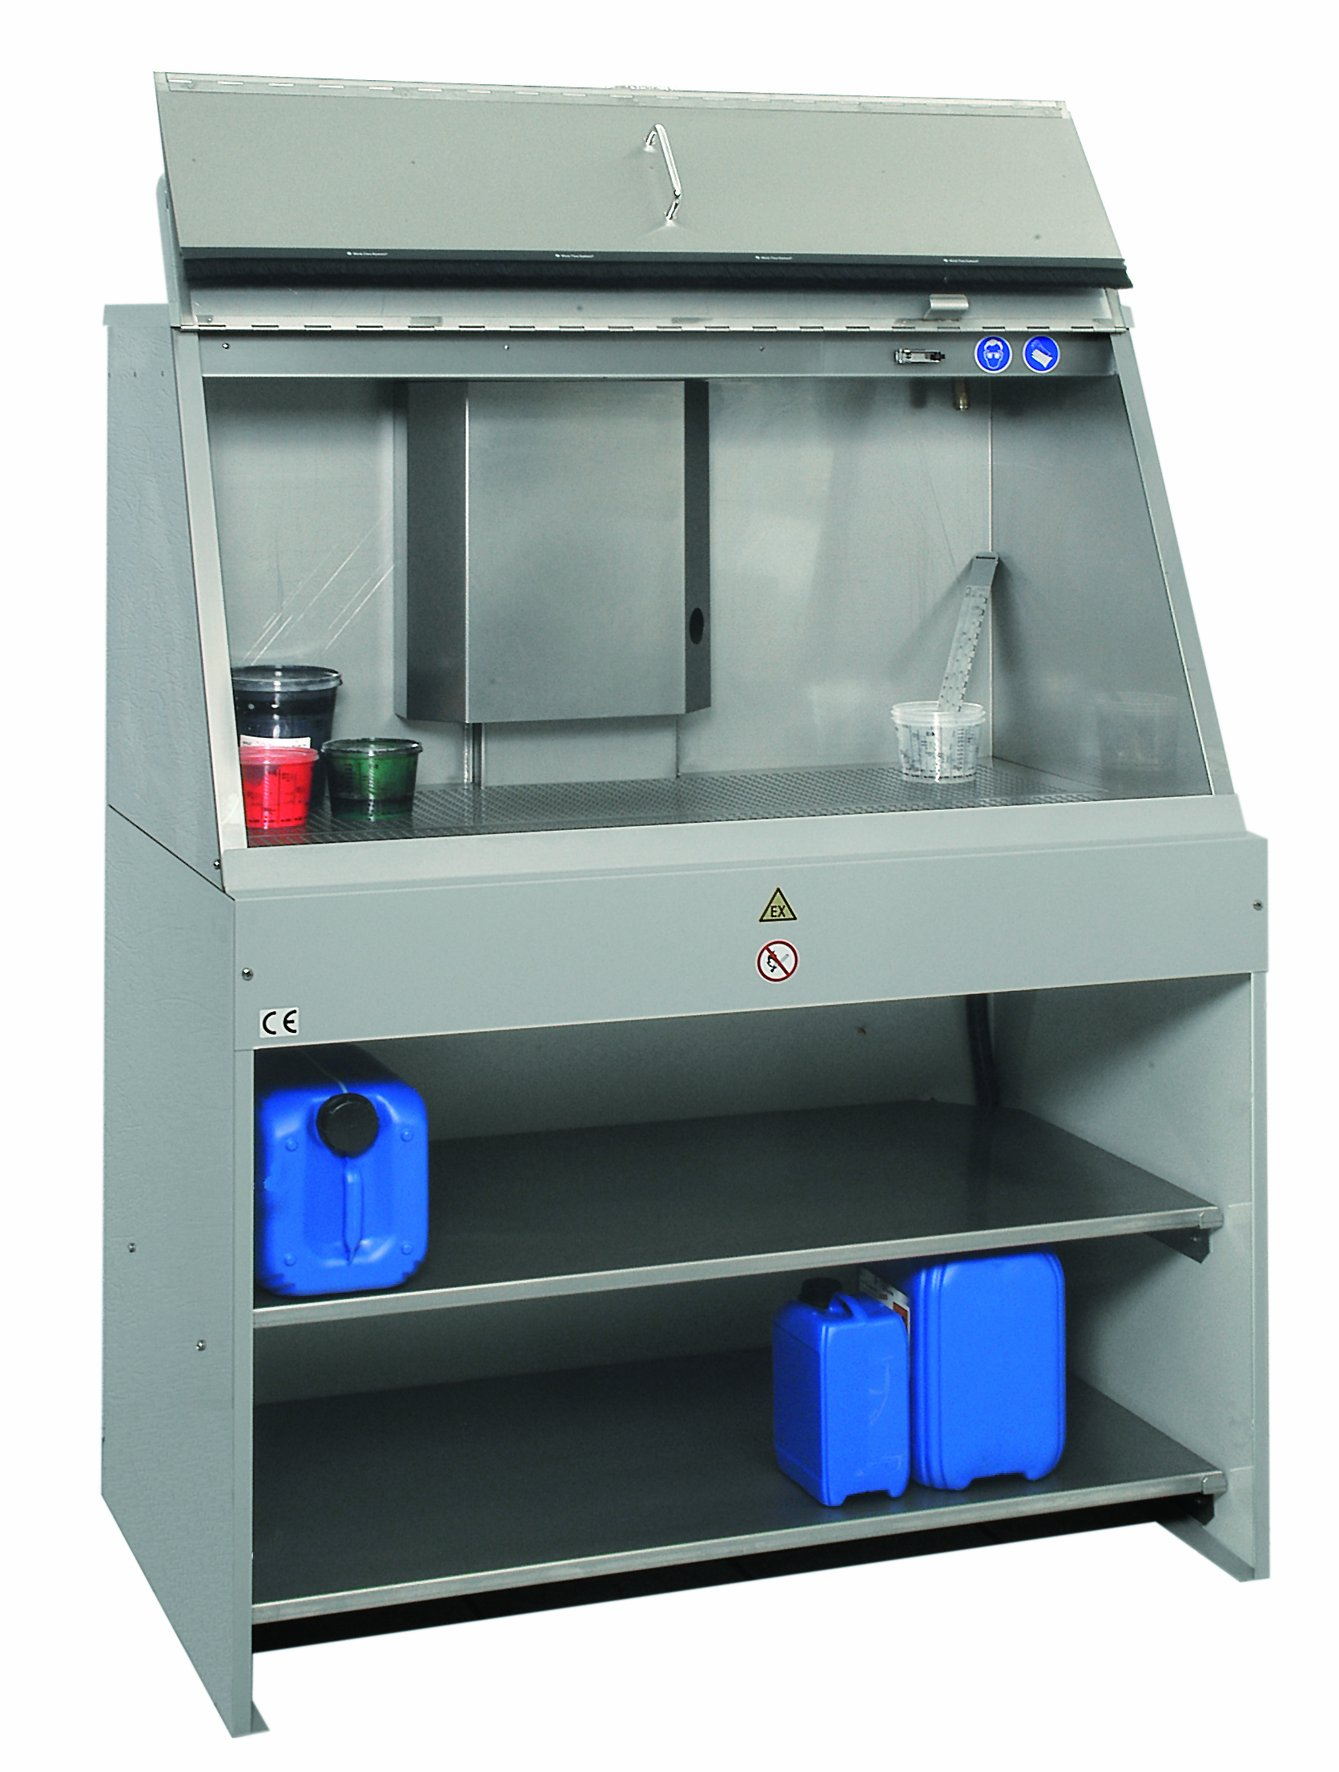 B-TEC Systems T-1200-2 Stainless Steel Large Capacity Mixing and Preparation Table with Optional Storage Shelves and F-1300 Flap, 47'' Length x 27-1/2'' Width x 70'' Height,for Solvent or Water